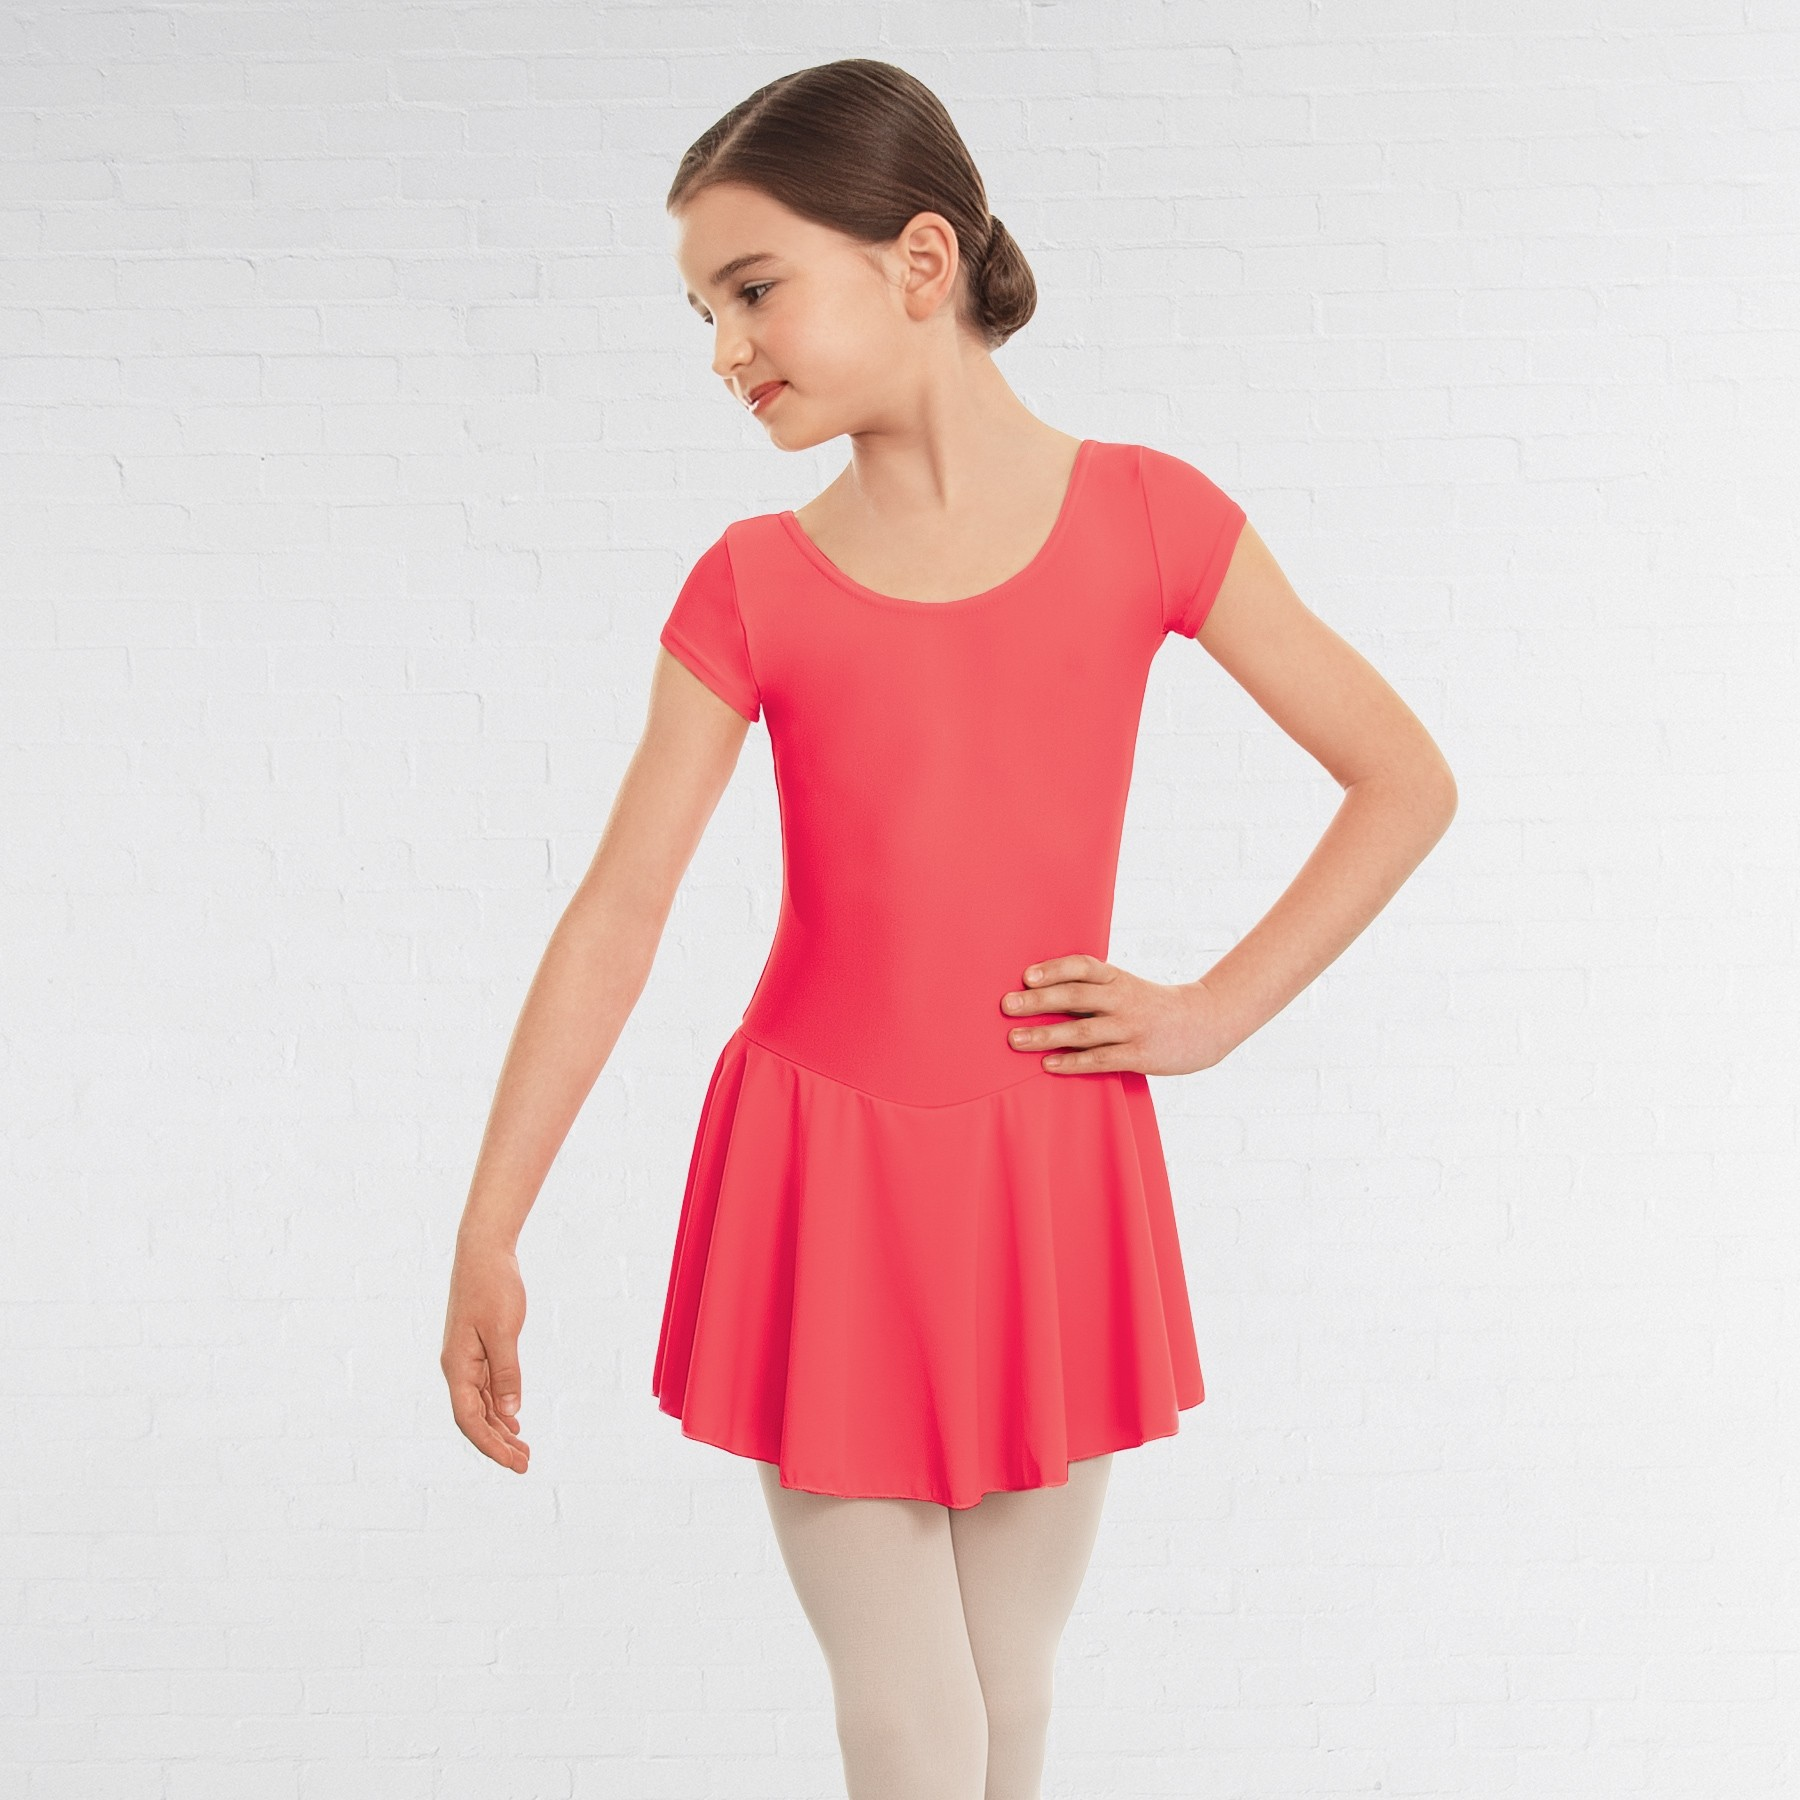 1st Position Maddy Skirted Cap Sleeve Leotard (Matt Nylon) (Coral)